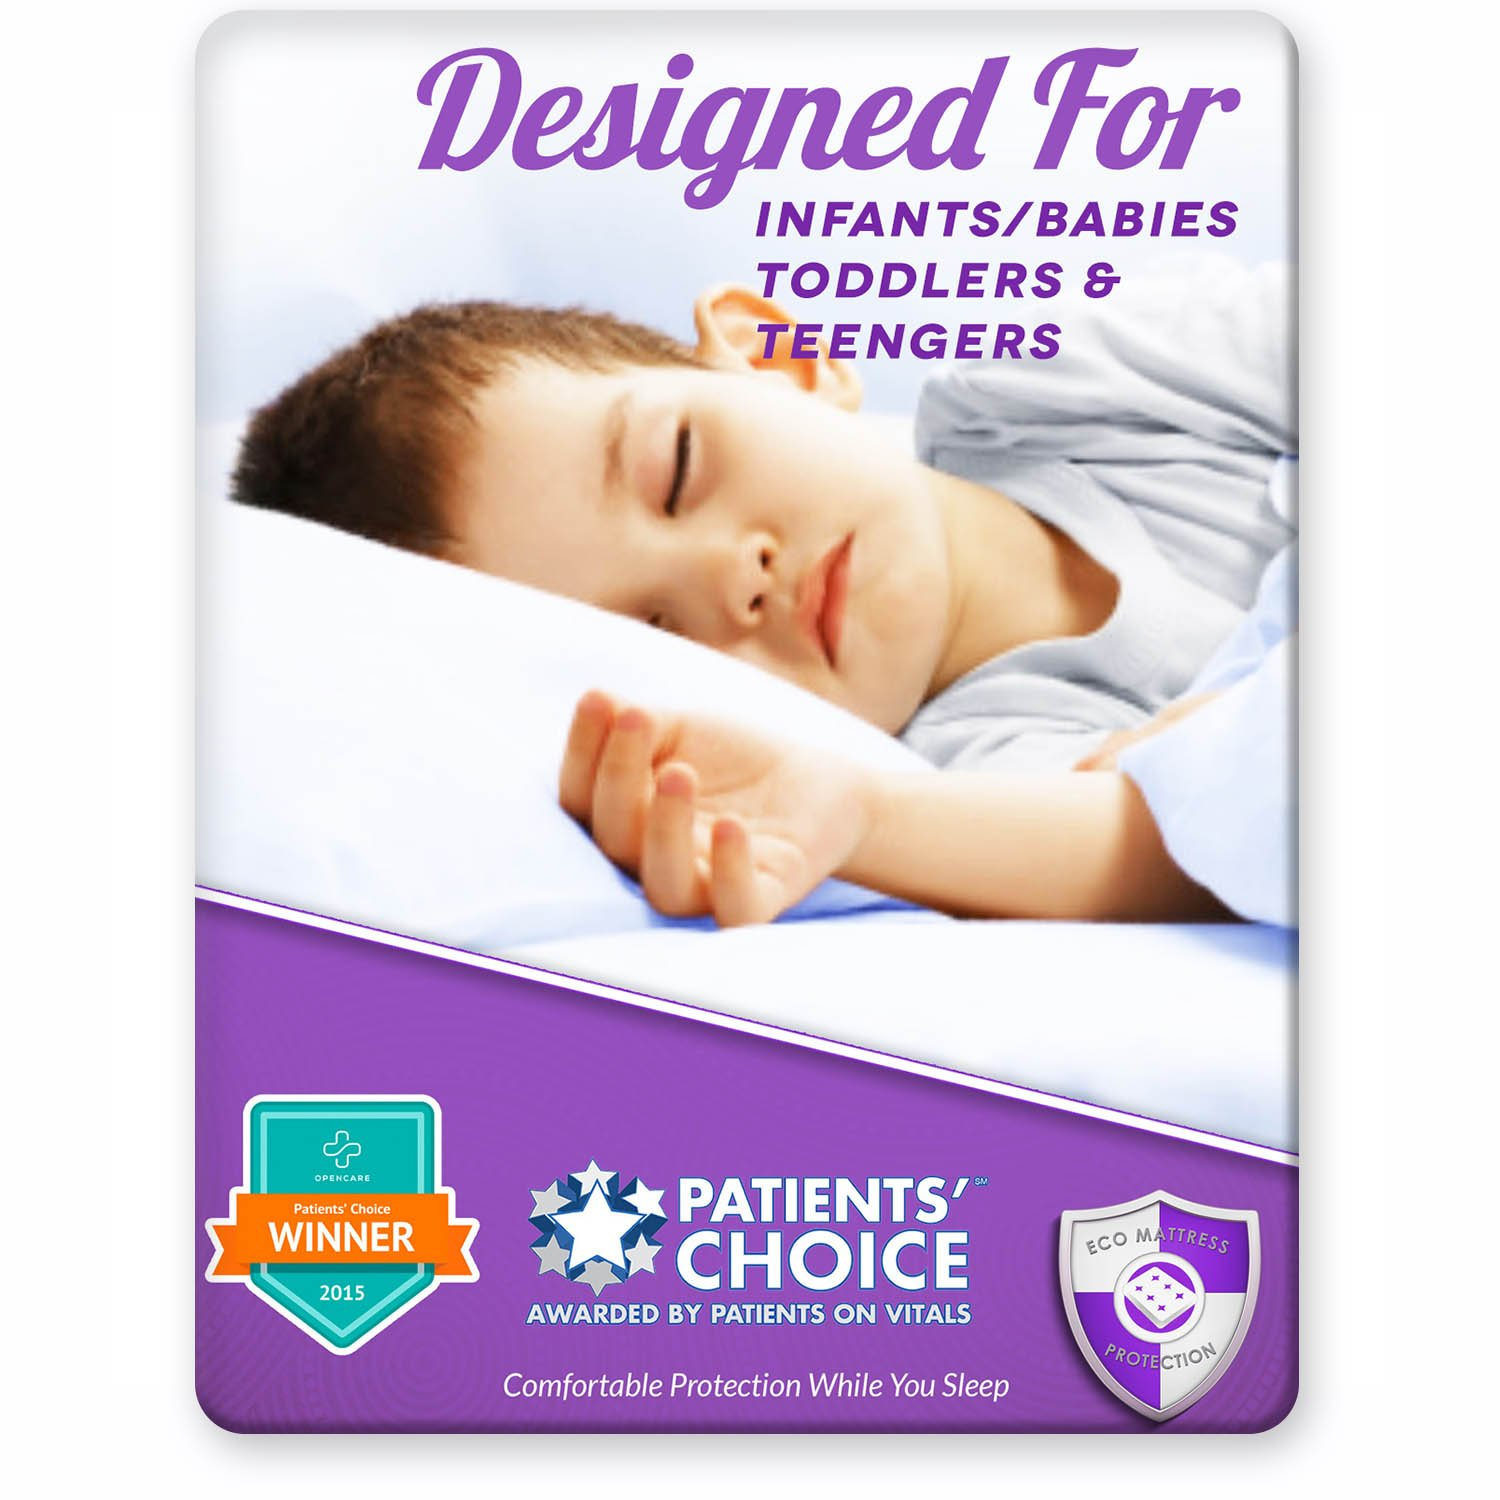 Baby and Toddler Crib Bed Wetting Protector. Prefect for Potty Training. Fits all Cribs, Cots and Day Beds. Super Soft, Easy to Wash and Dry. Award Winning Eco Mattress Protection and Proudly Made USA